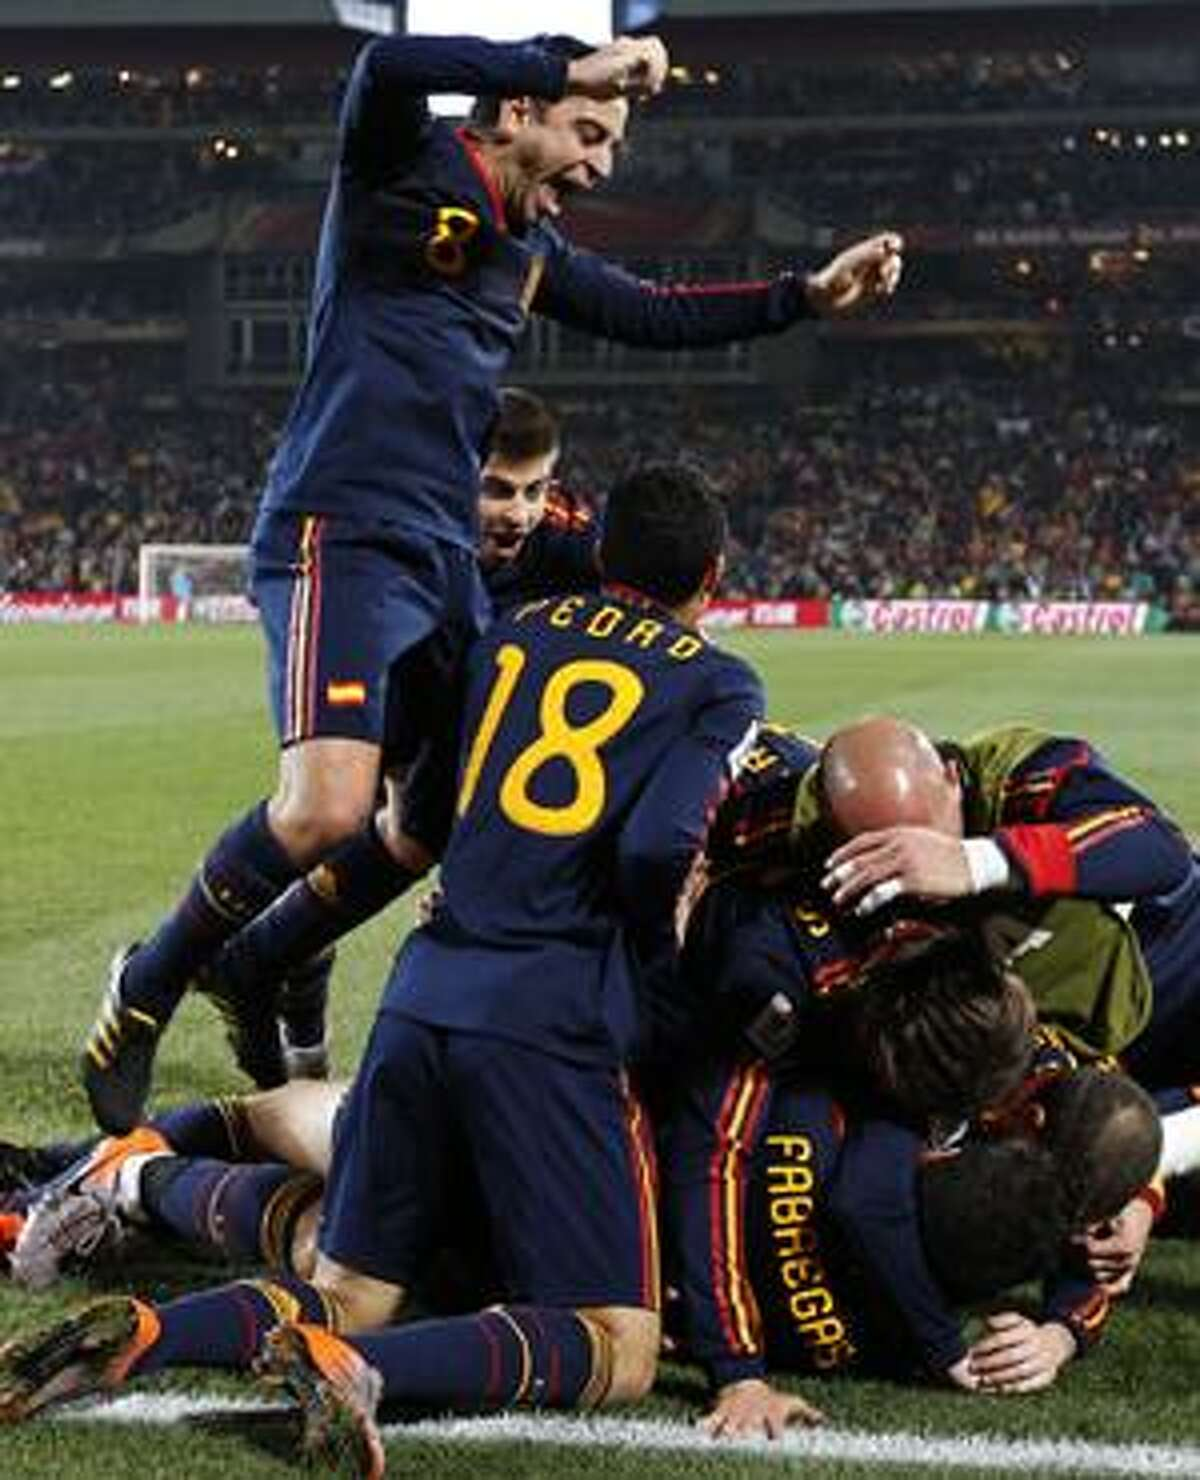 Spain players celebrate with Spain's David Villa, not visible, after he scored a goal during the World Cup quarterfinal soccer match between Paraguay and Spain at Ellis Park Stadium in Johannesburg, South Africa, Saturday, July 3, 2010. (AP Photo/Bernat Armague)